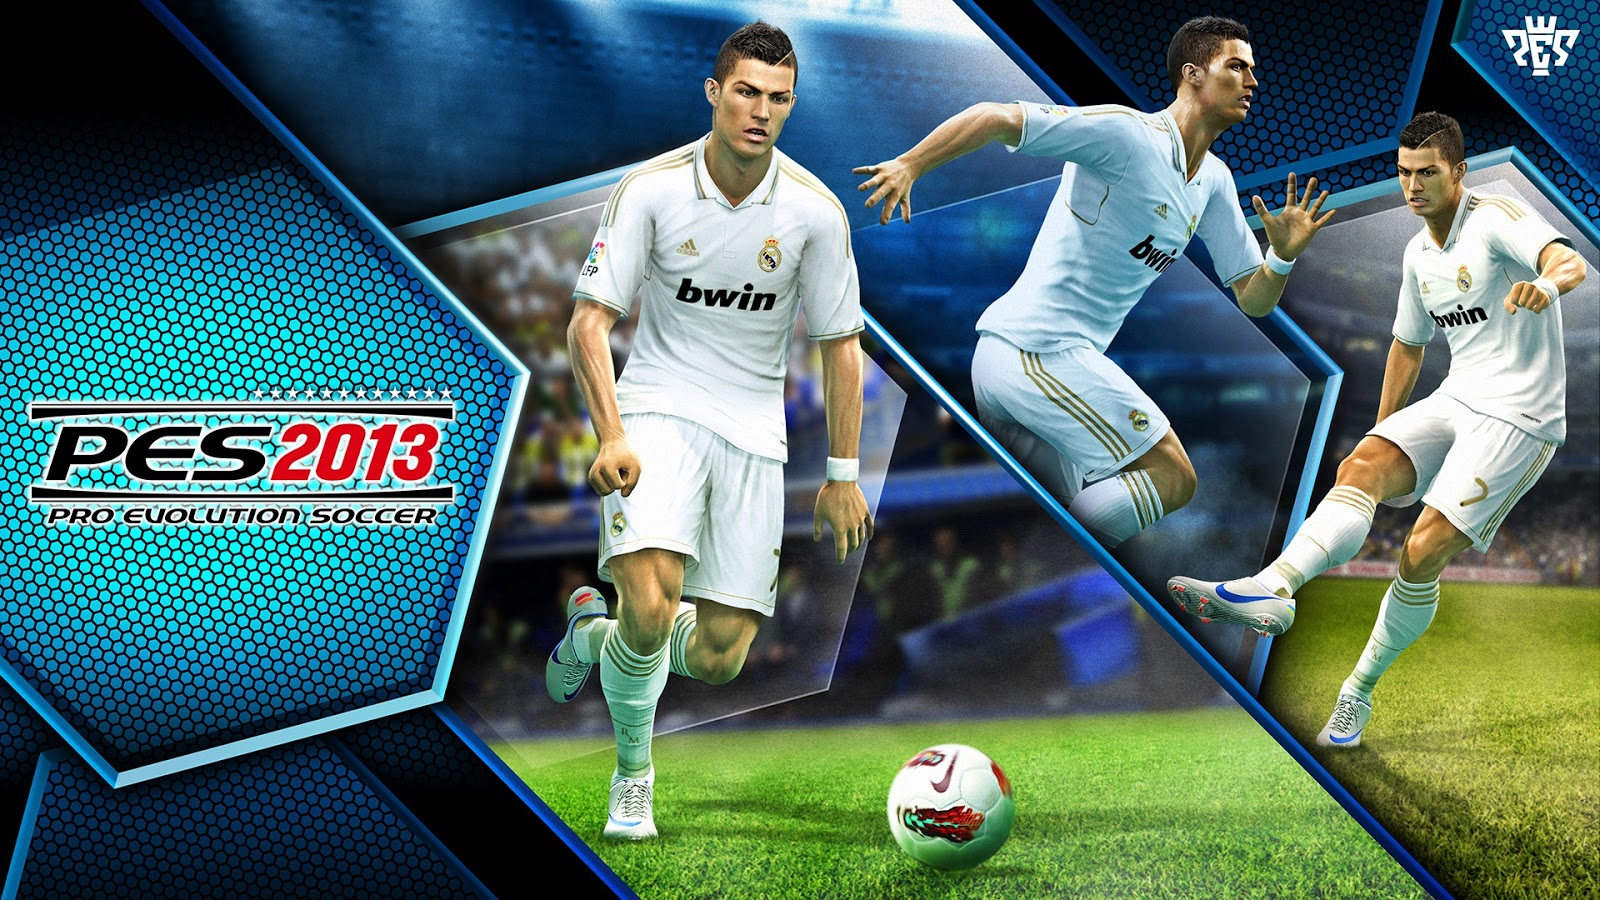 cristiano ronaldo top football player new hd wallpapers 2013 | all